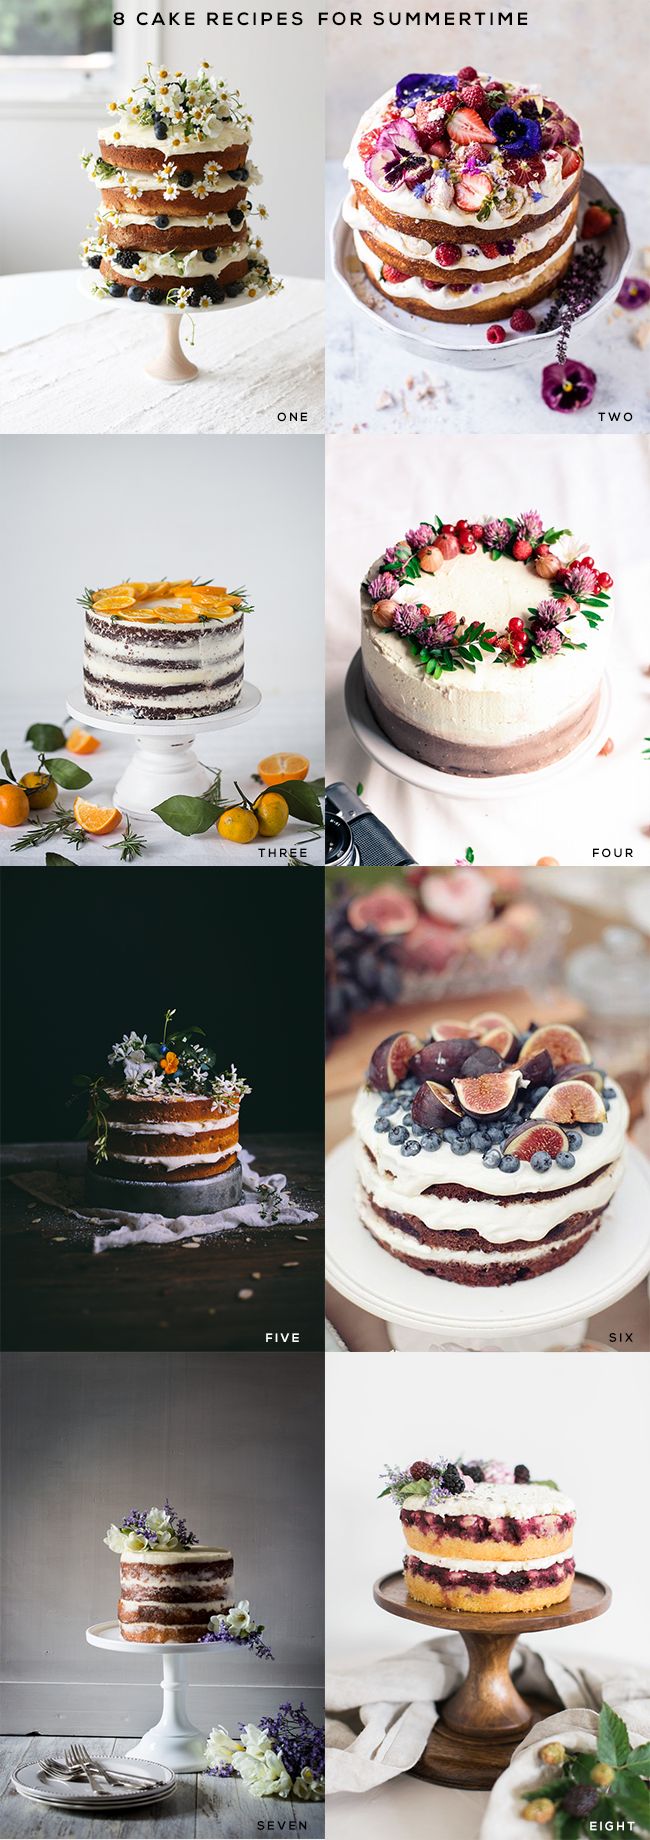 8 Cake Recipes for Summertime